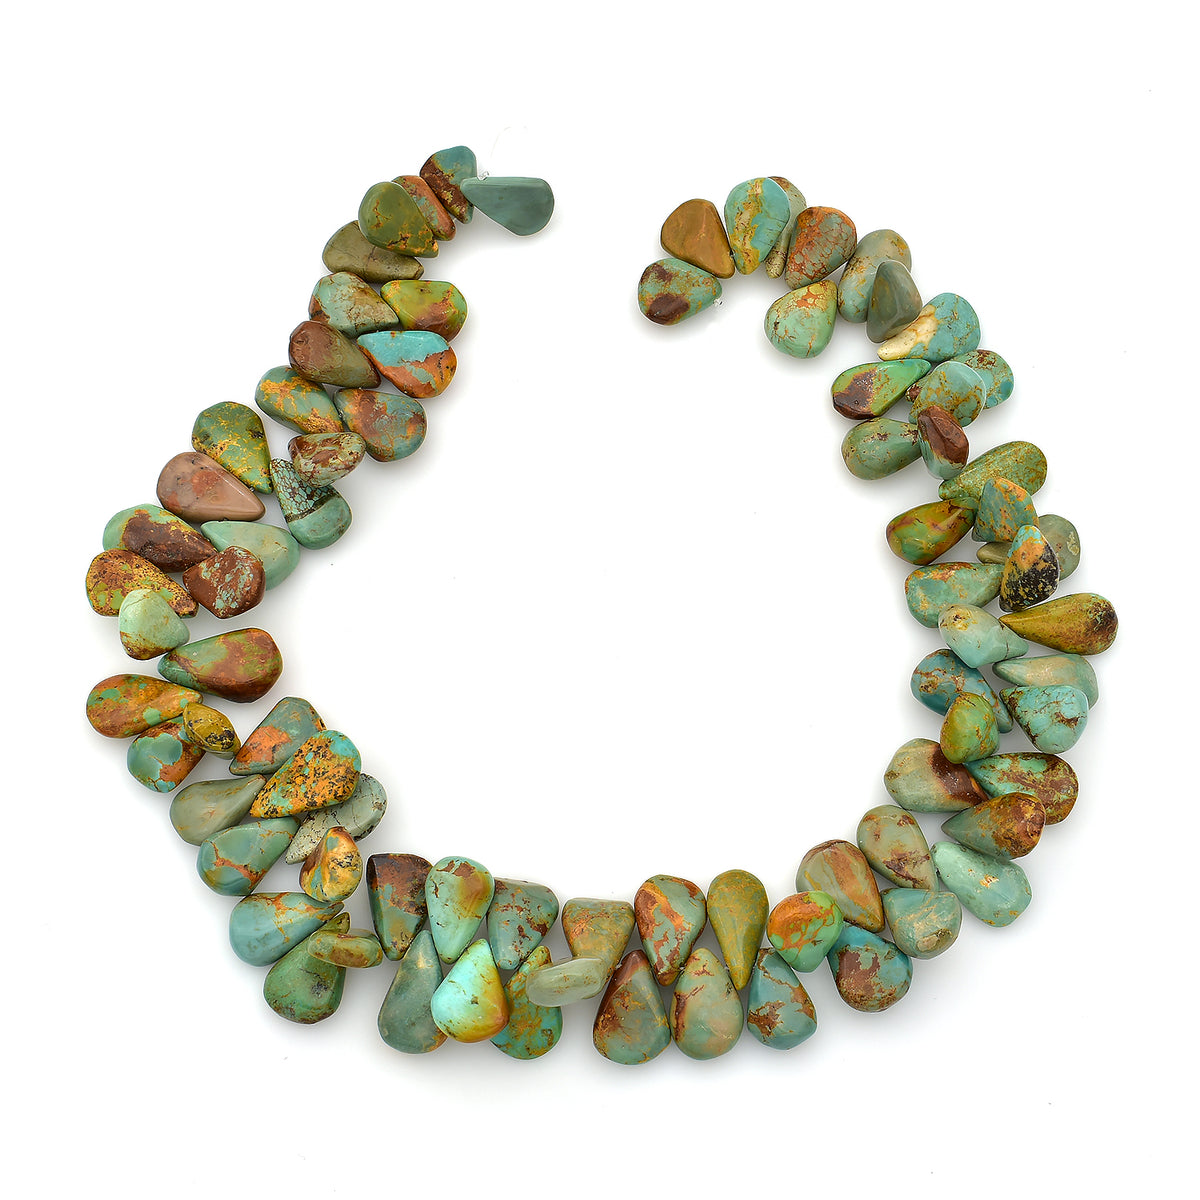 Bluejoy Genuine Natural American Turquoise 8mm Free-Form Disc Bead 16 inch Strand